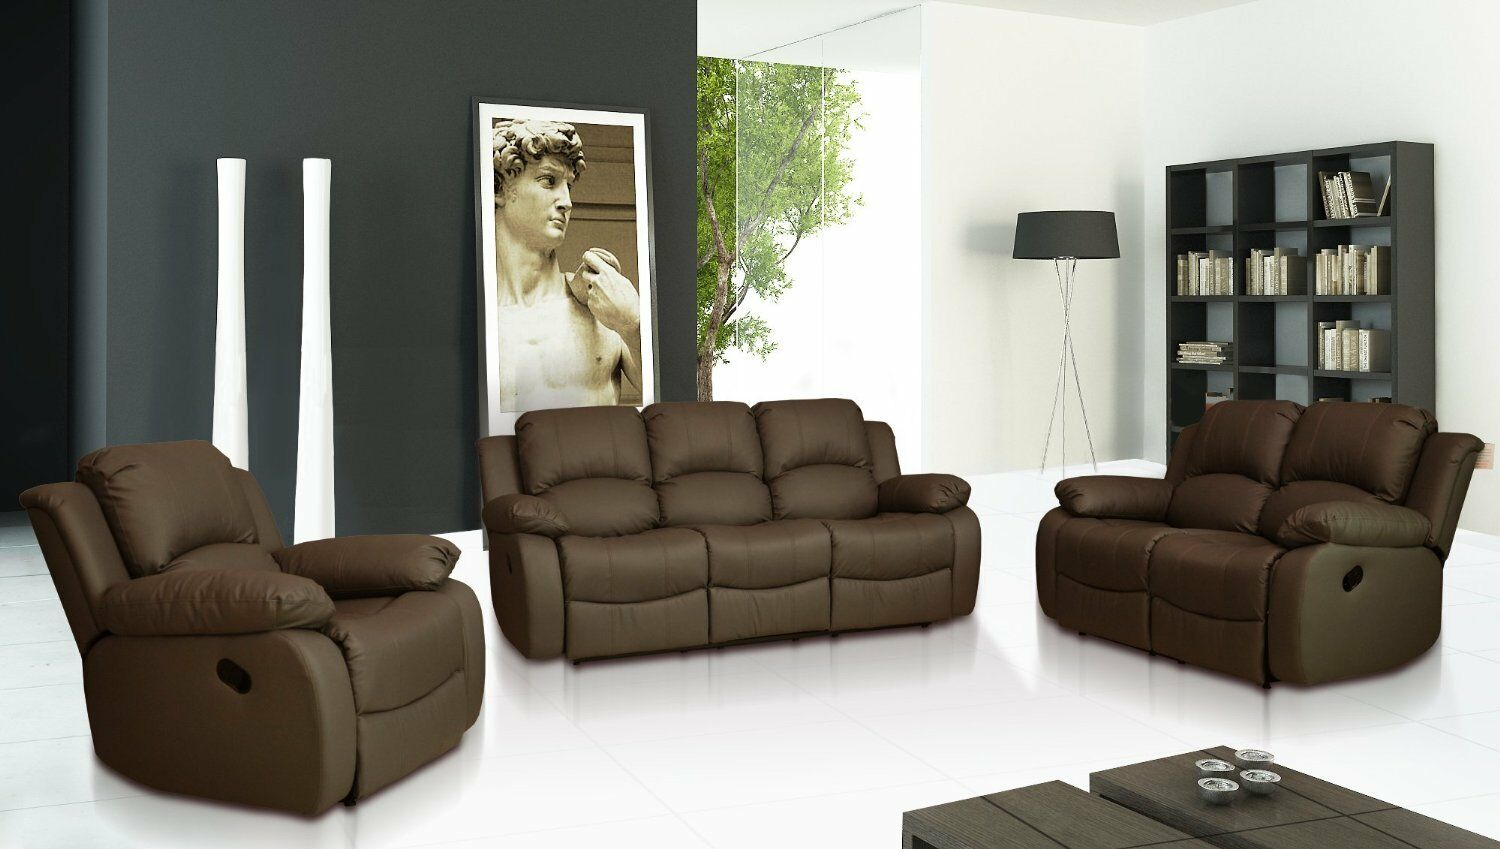 SALE NEW LUXURY VALENCIA 3+2+1 SEATER LEATHER RECLINER